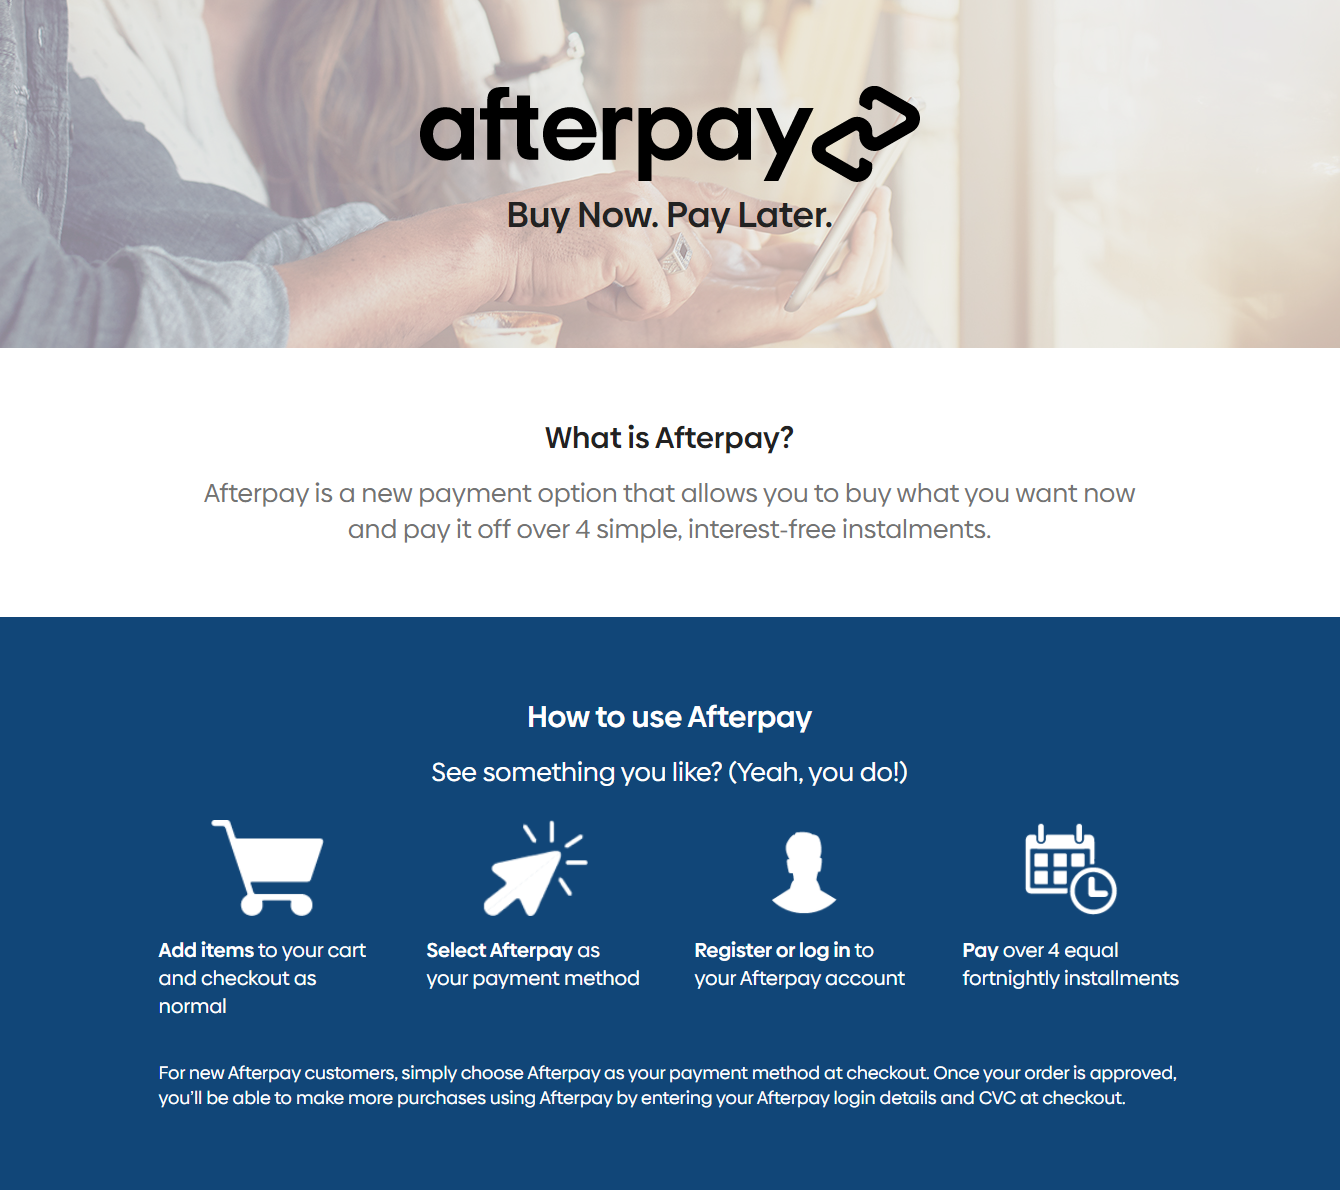 afterpay-long-banner1.png